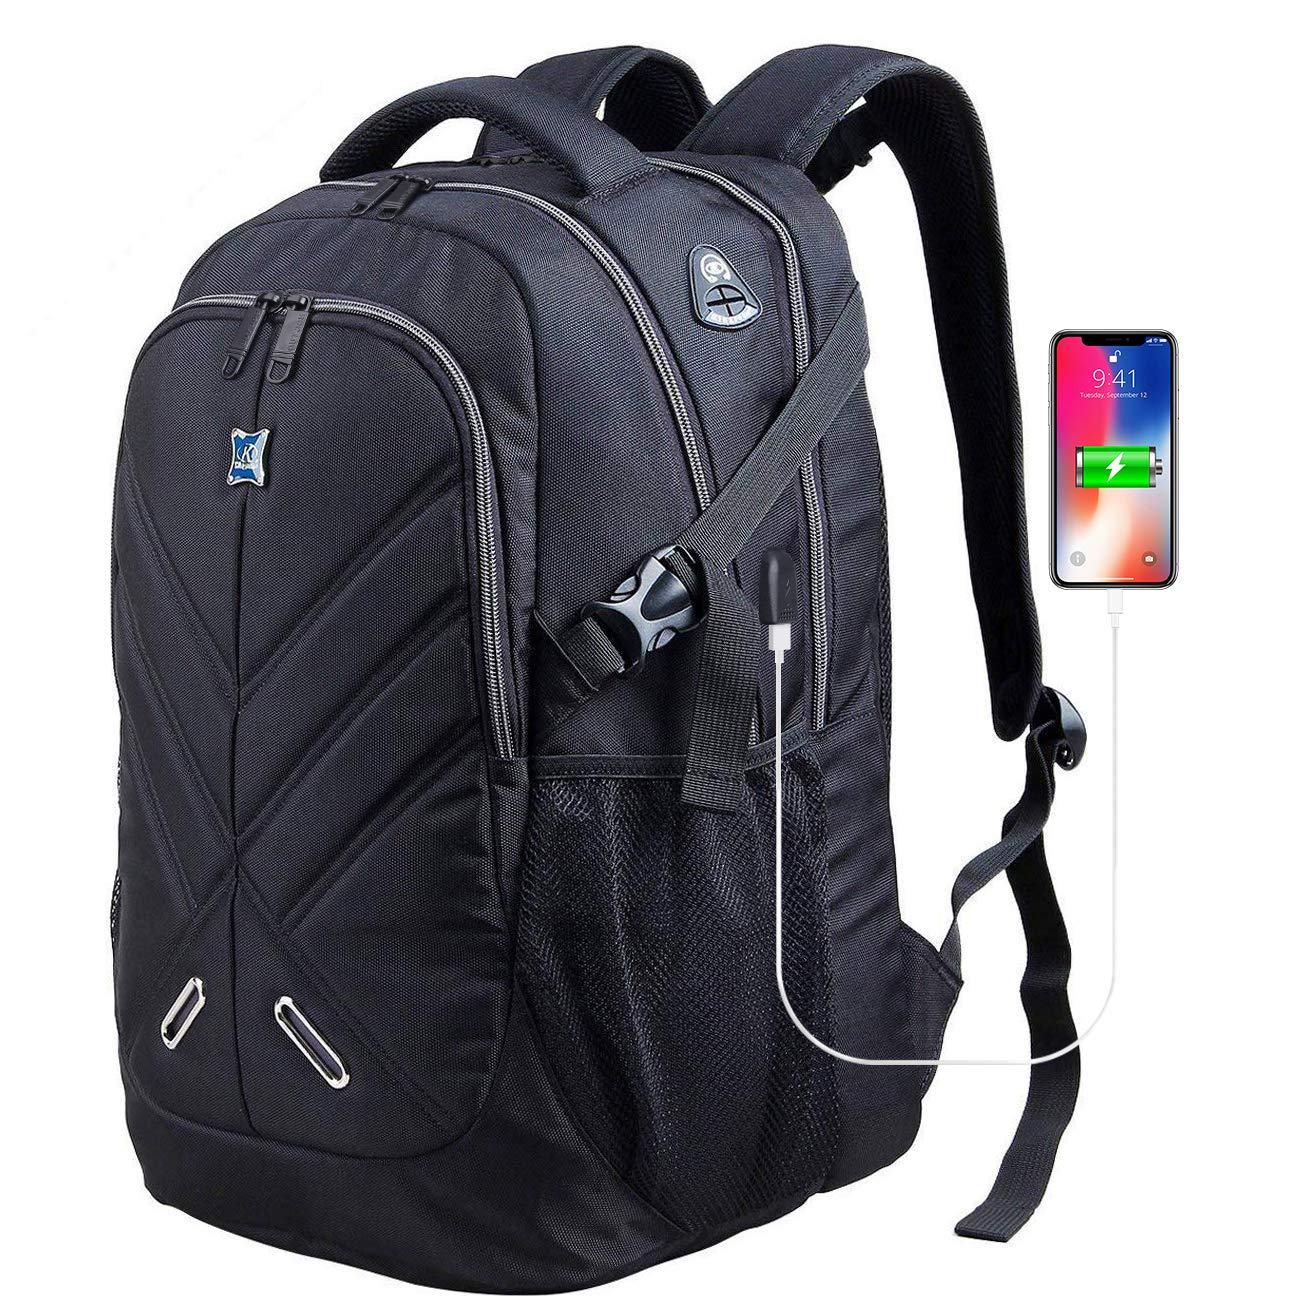 08c820f75306 OUTJOY Laptop Backpack for Men Women Waterproof School Backpack Shockproof  Computer Backpack Fits 17 Inches Laptops with Rain Cover+USB Charging ...